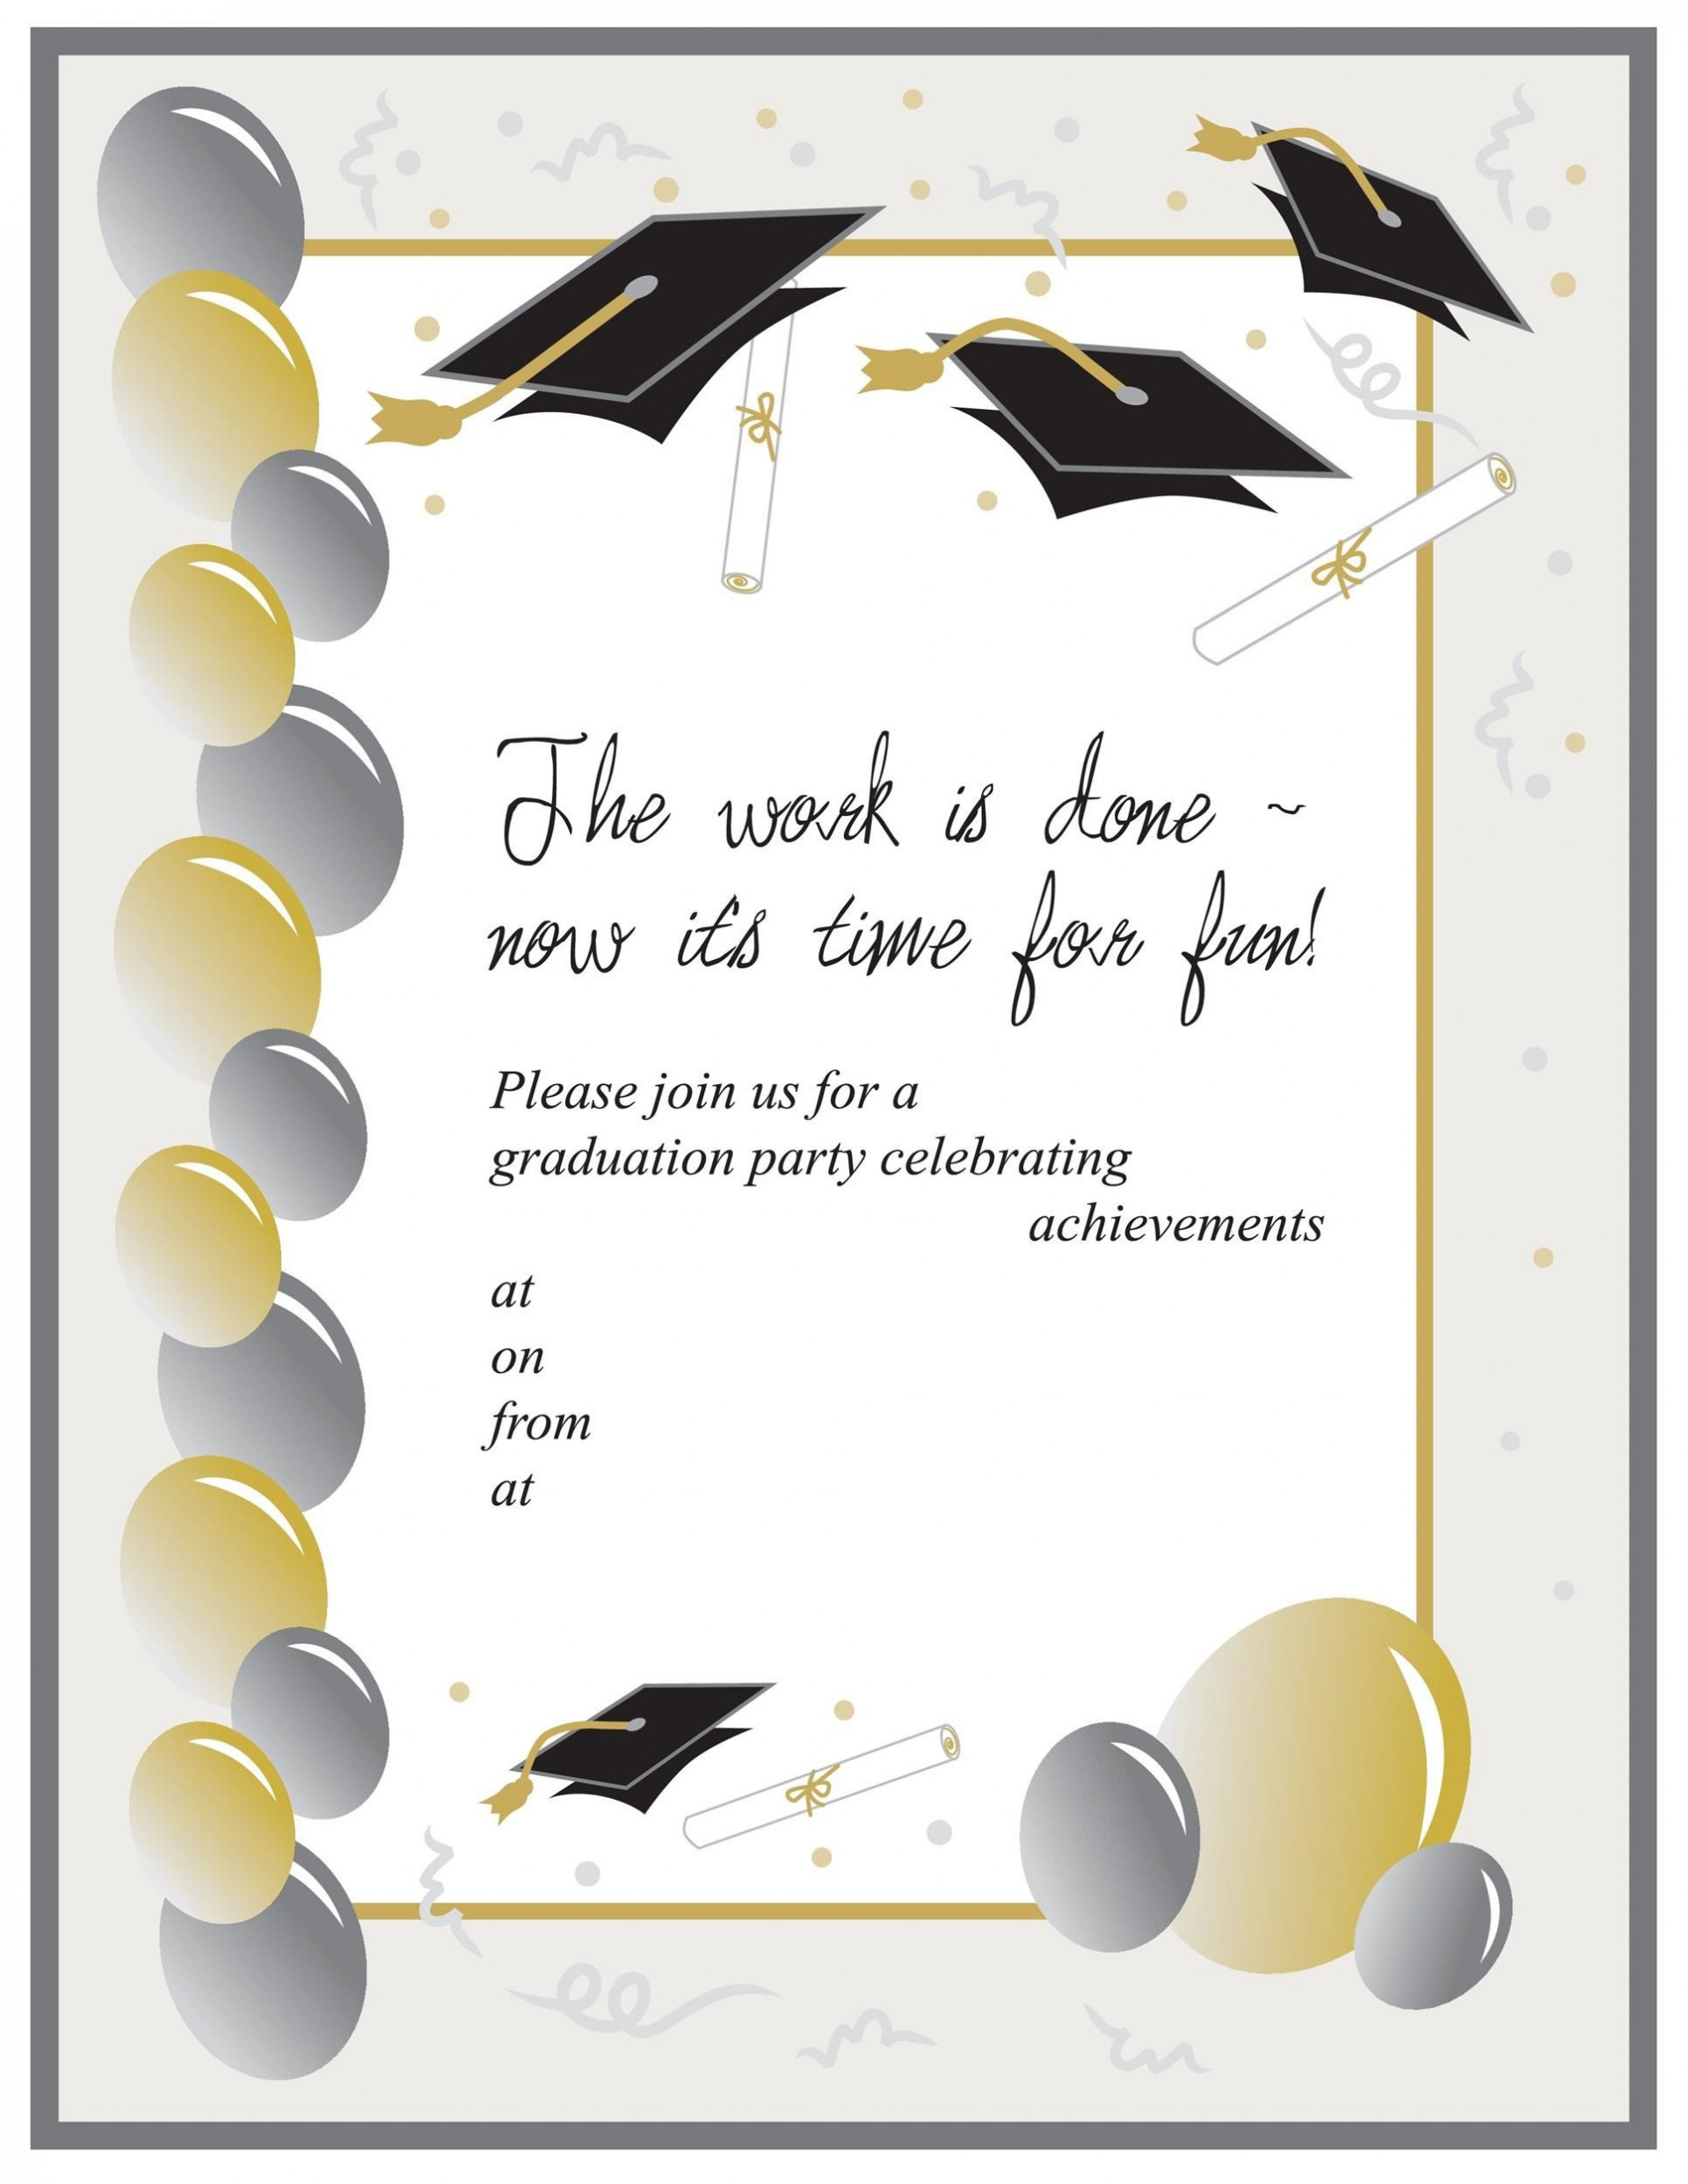 008 Formidable Free Printable Graduation Invitation Template Example  Preschool Card 20191920